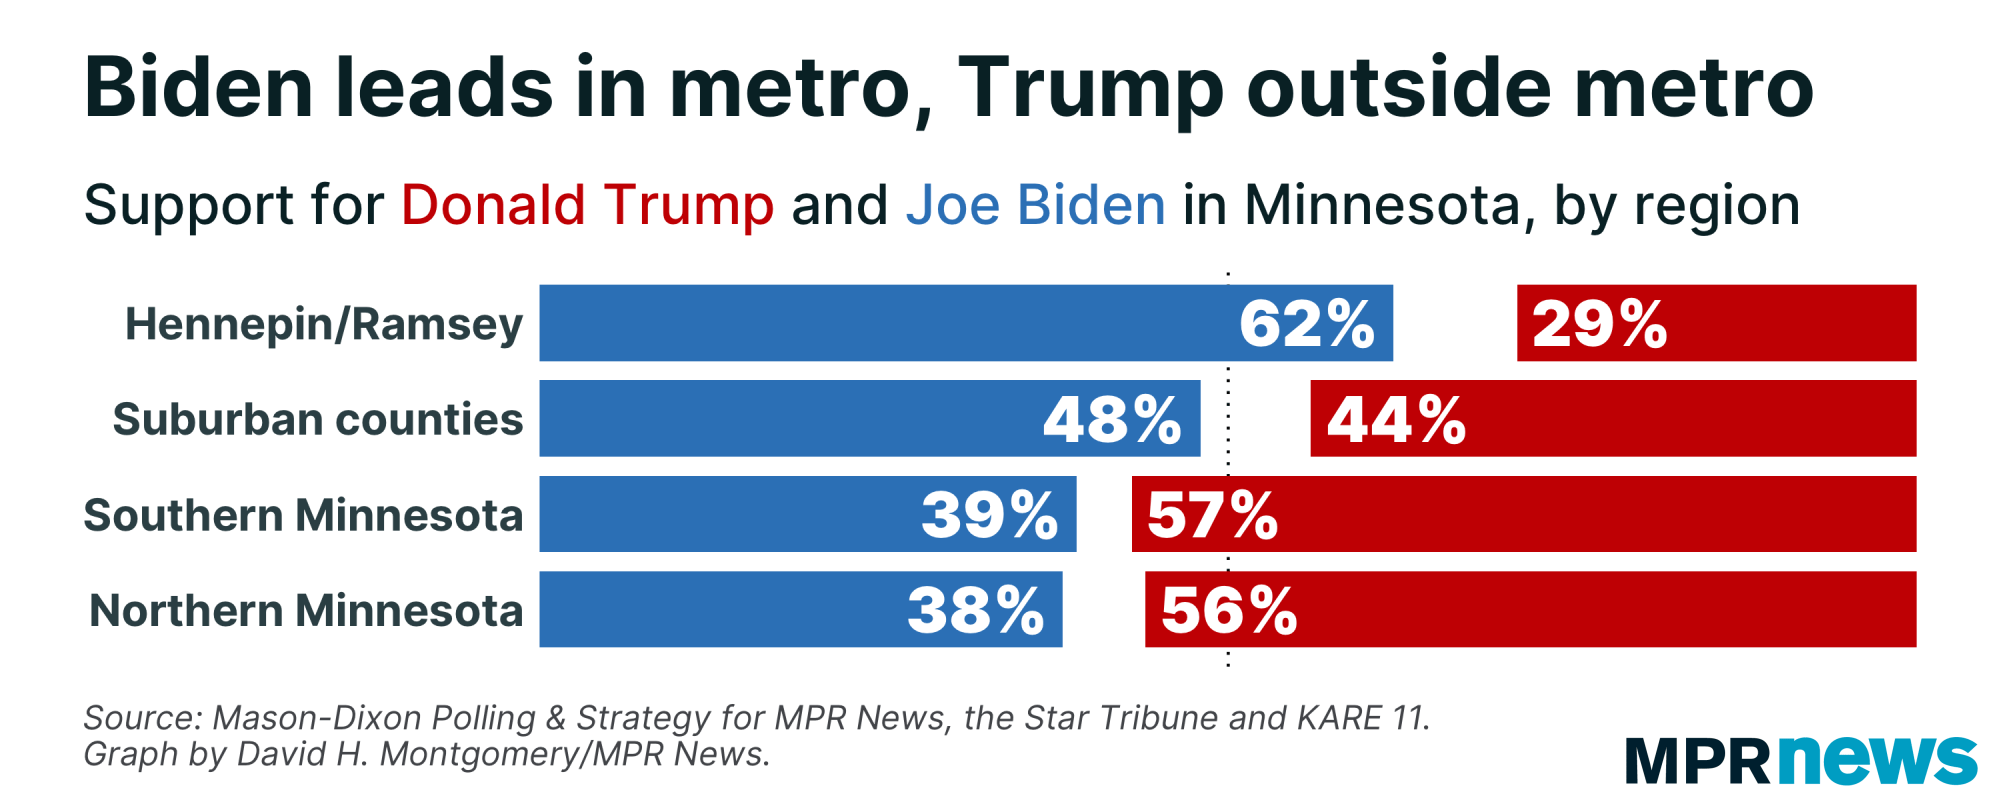 Support for Trump and Biden in Minnesota, by region